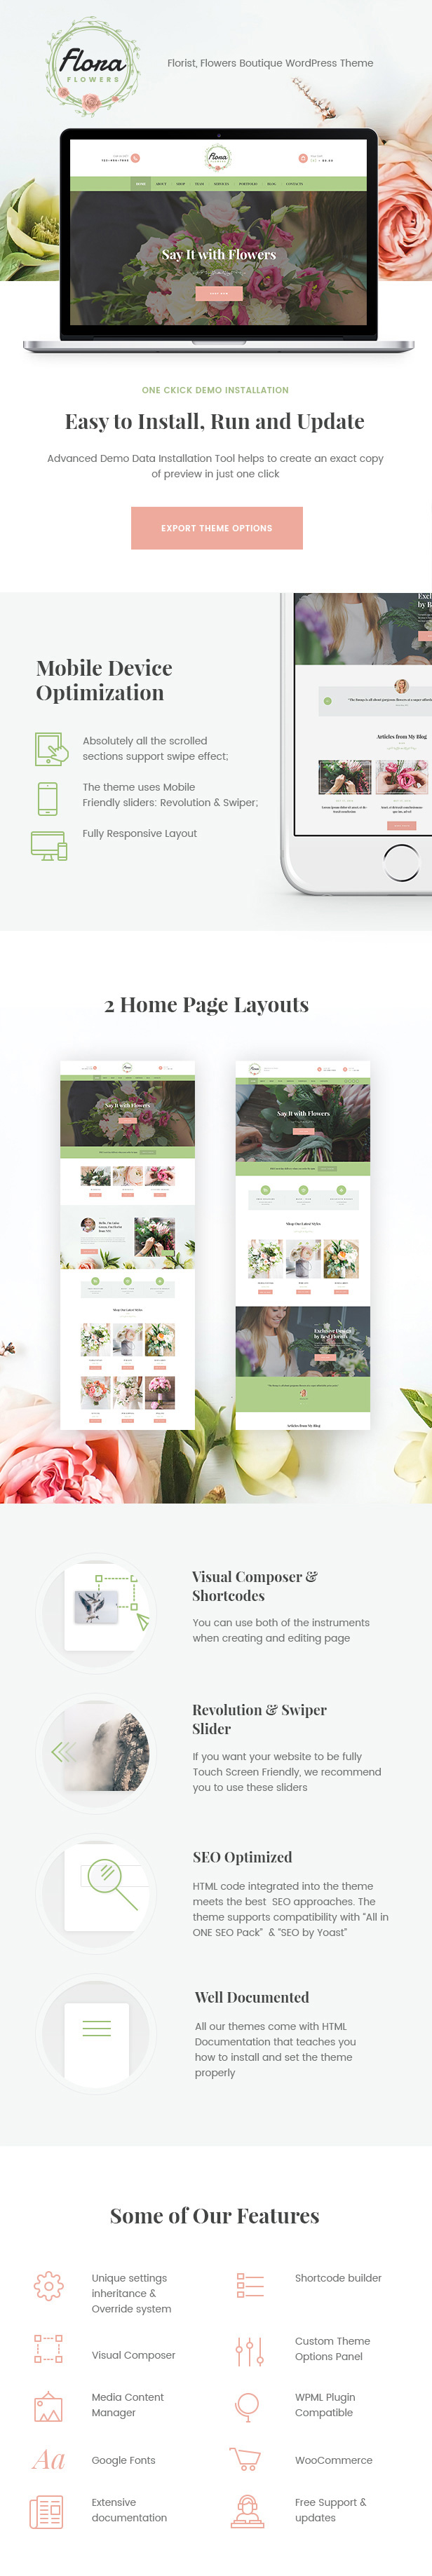 Flowers Boutique and Florist WordPress Theme - 1